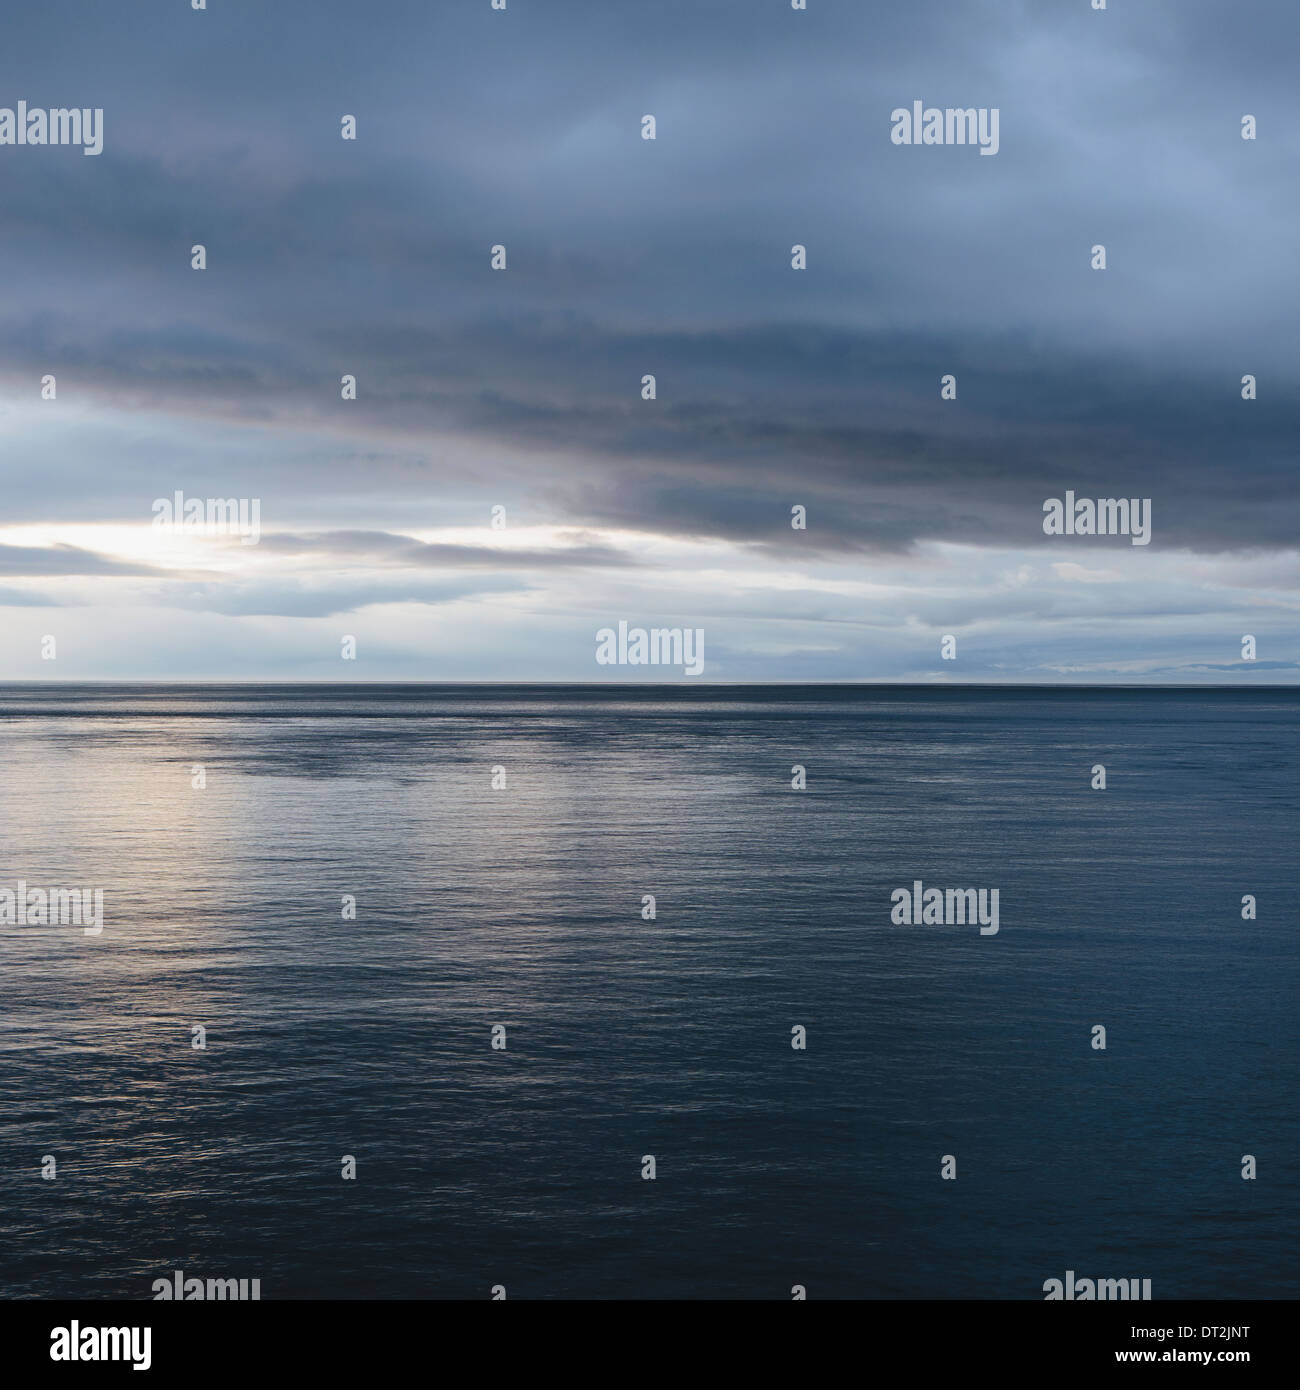 The sea and sky over Puget Sound in Washington USA The horizon with light cloud layers above - Stock Image